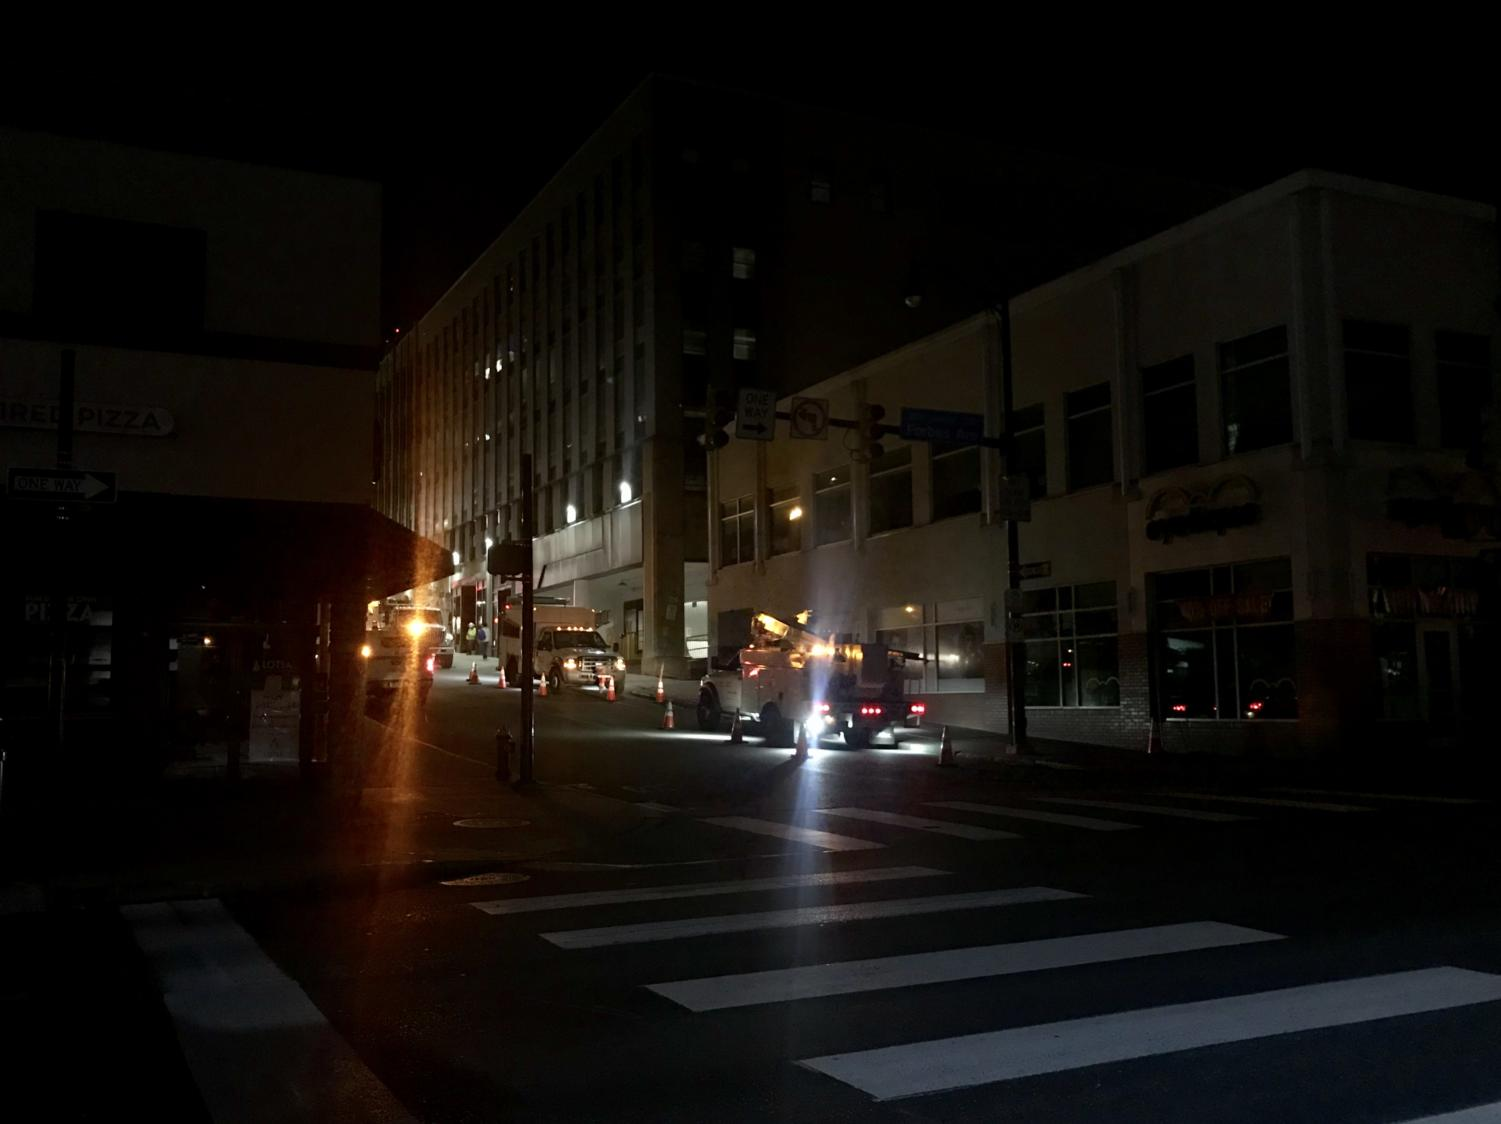 Duquesne Light Company trucks work at the corner of Forbes and Atwood after midnight during a power outage that carried over into early Tuesday morning.